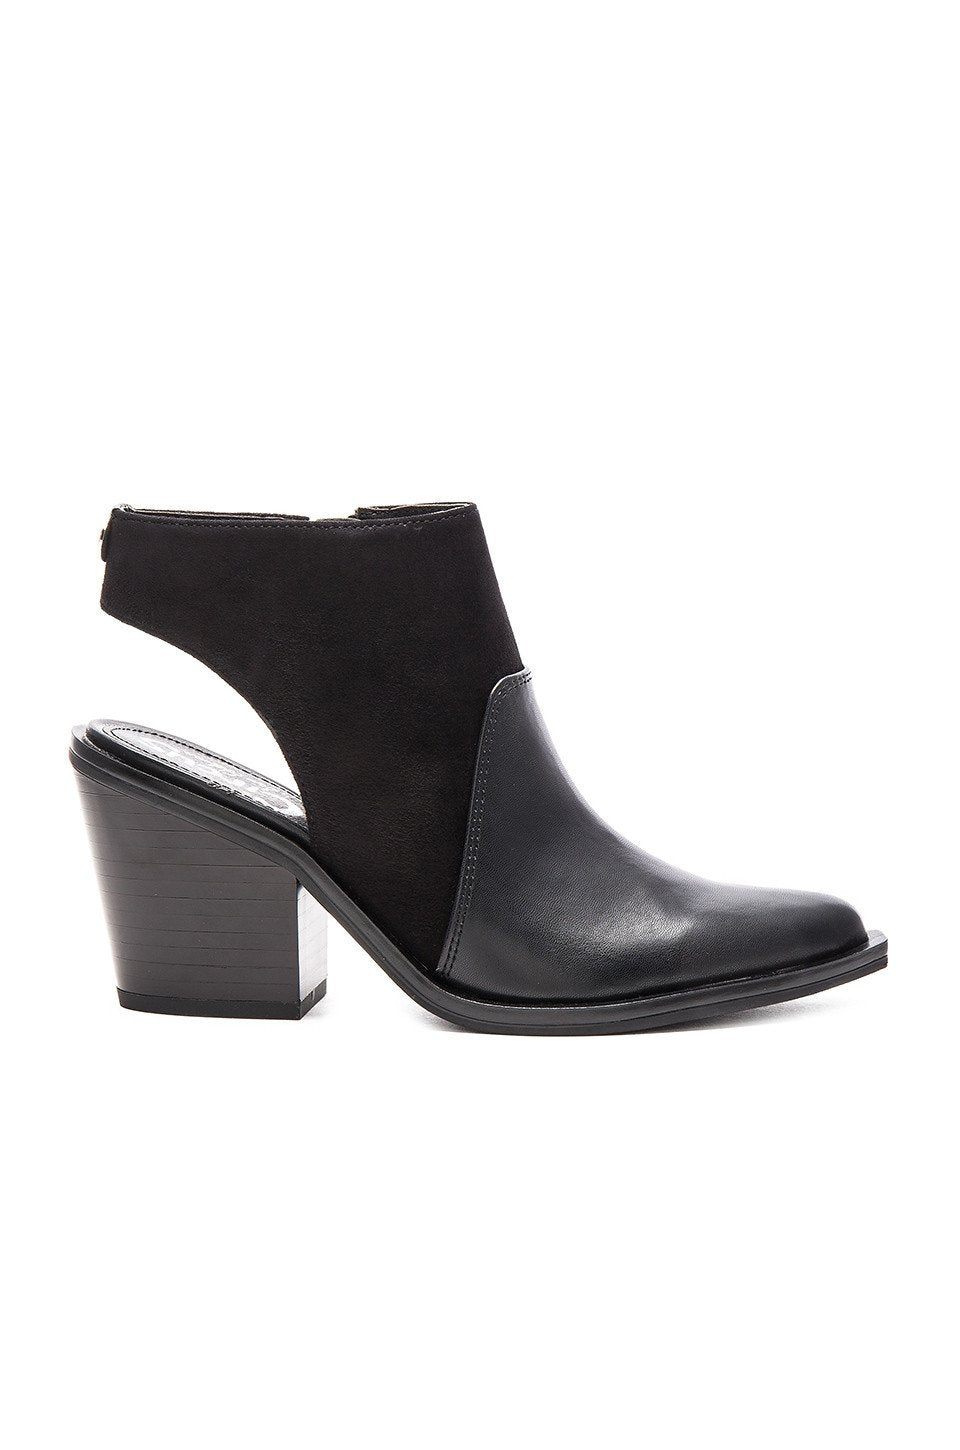 Carly Bootie - Kustom Label - 1